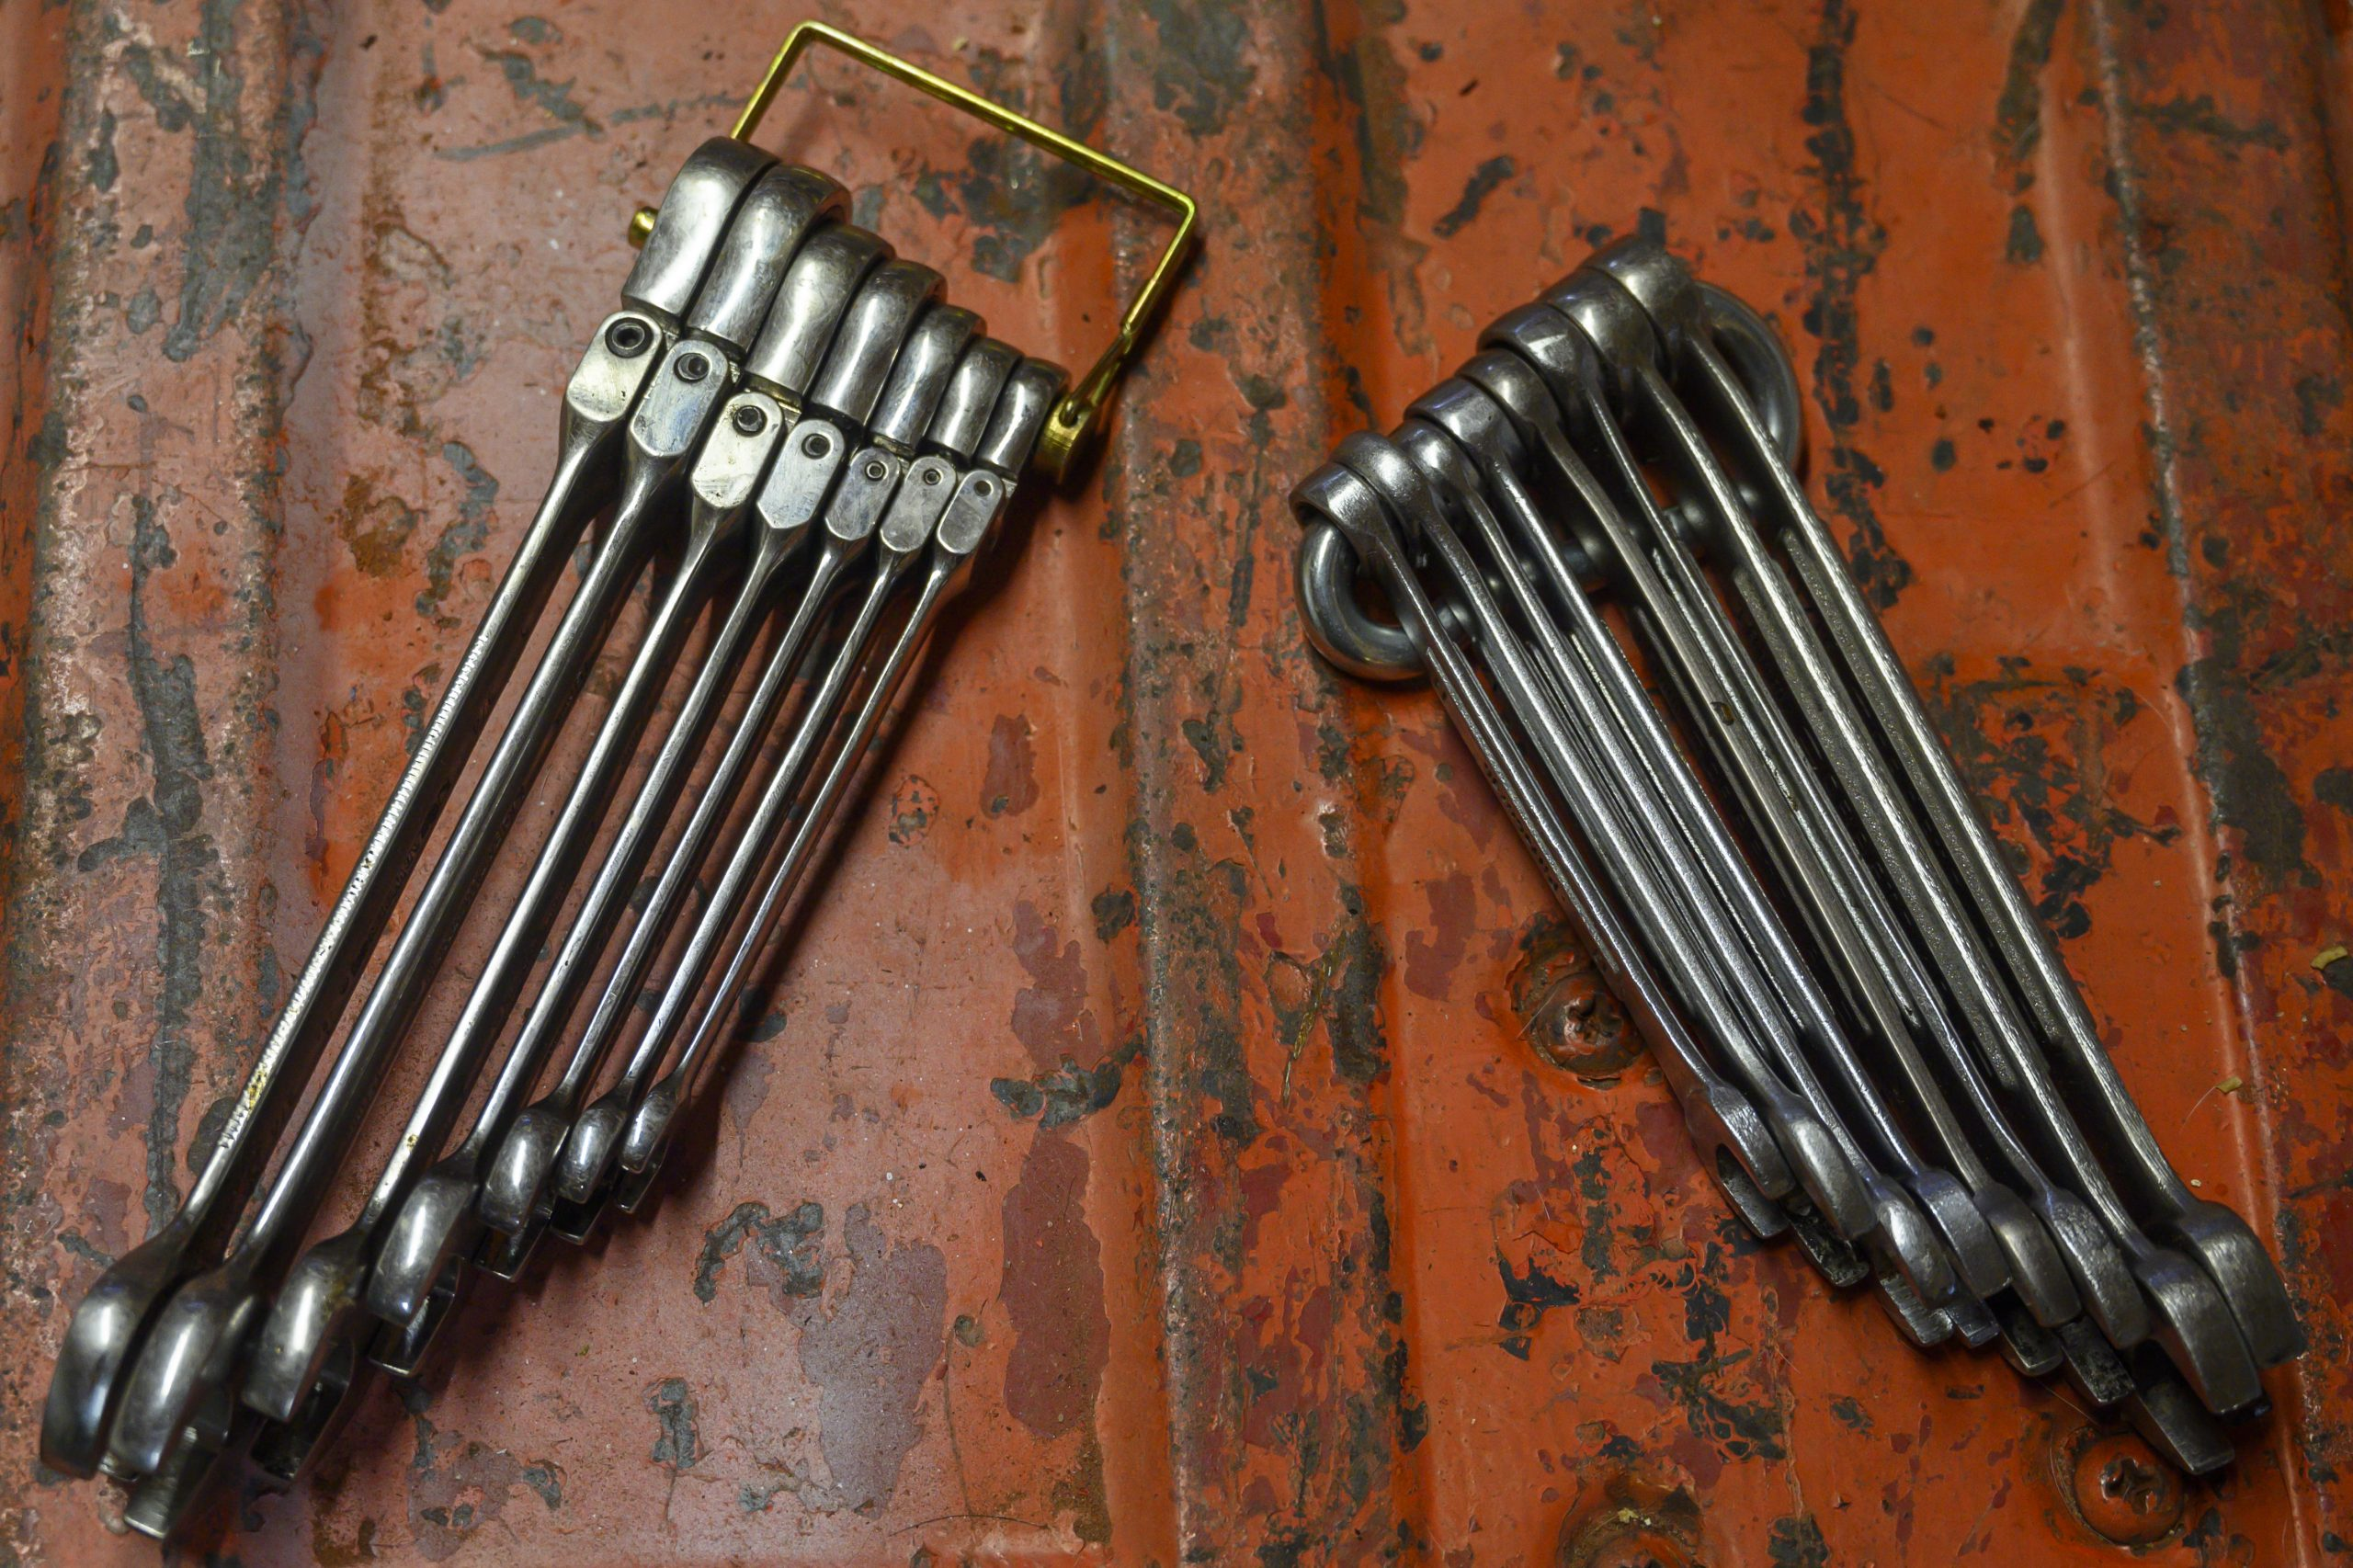 Wrenchin' Wednesday: Wrench organization for the road